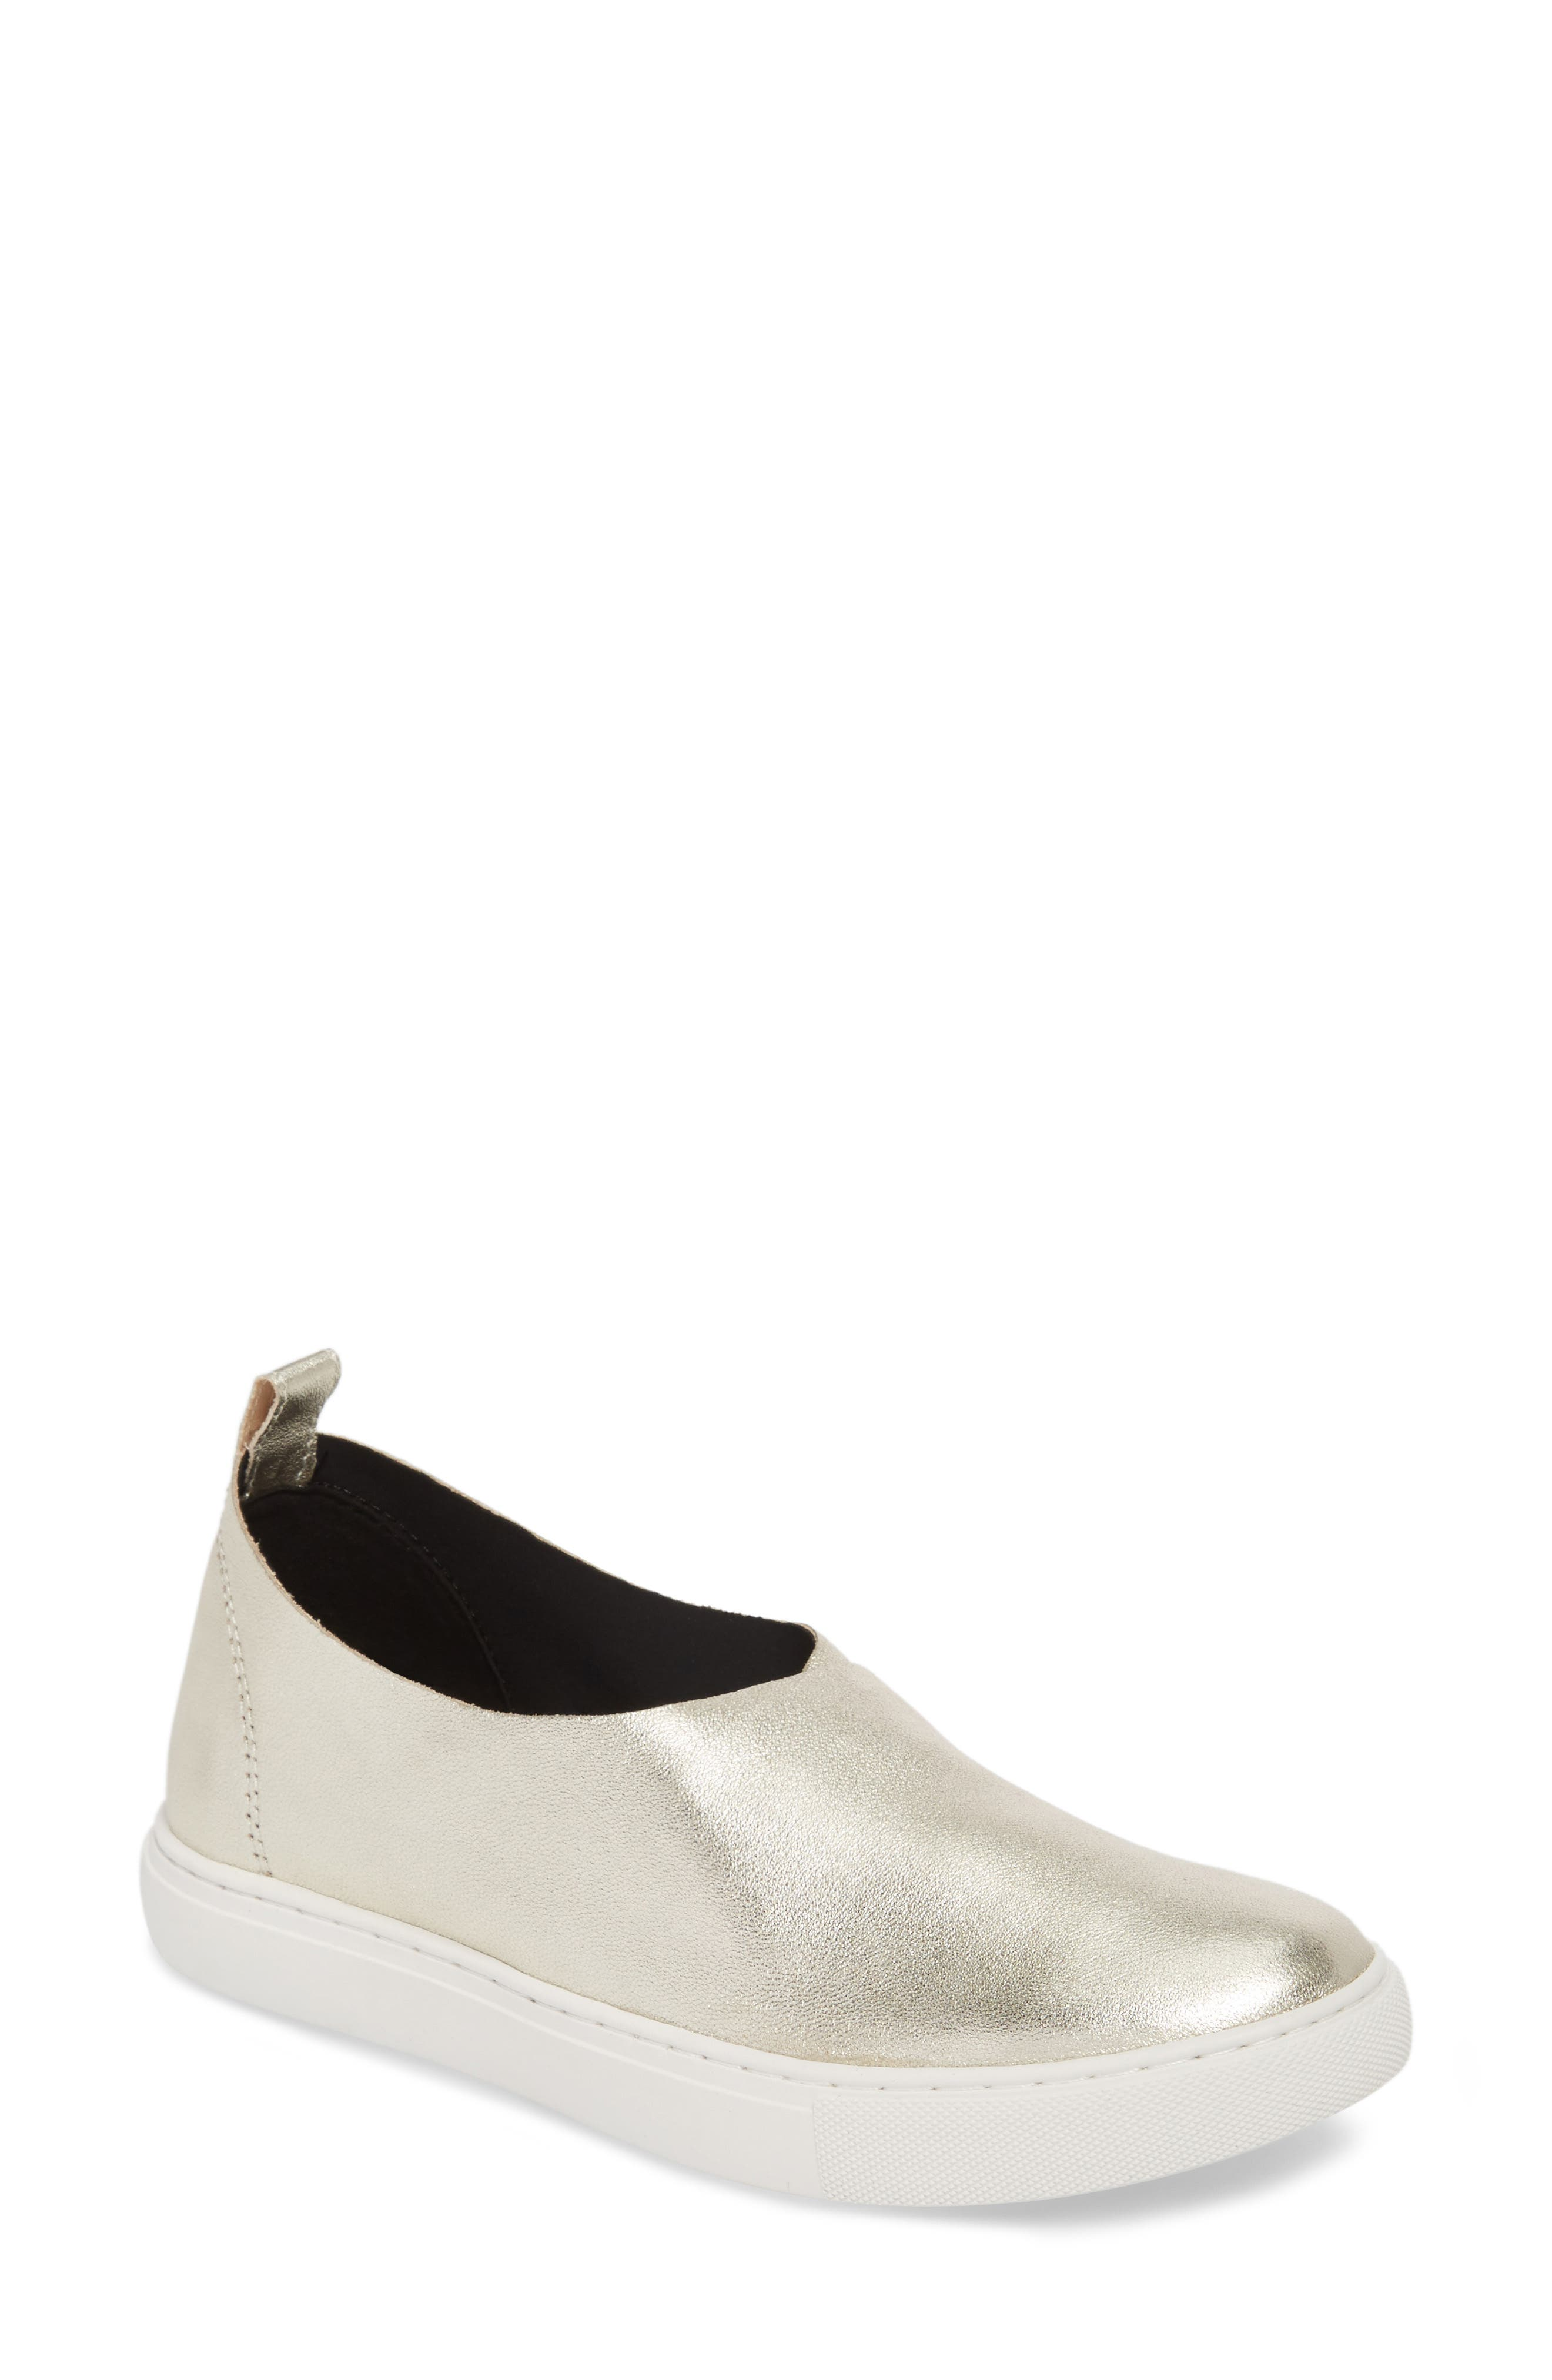 Kathy Slip-On Sneaker,                         Main,                         color, Light Gold Leather